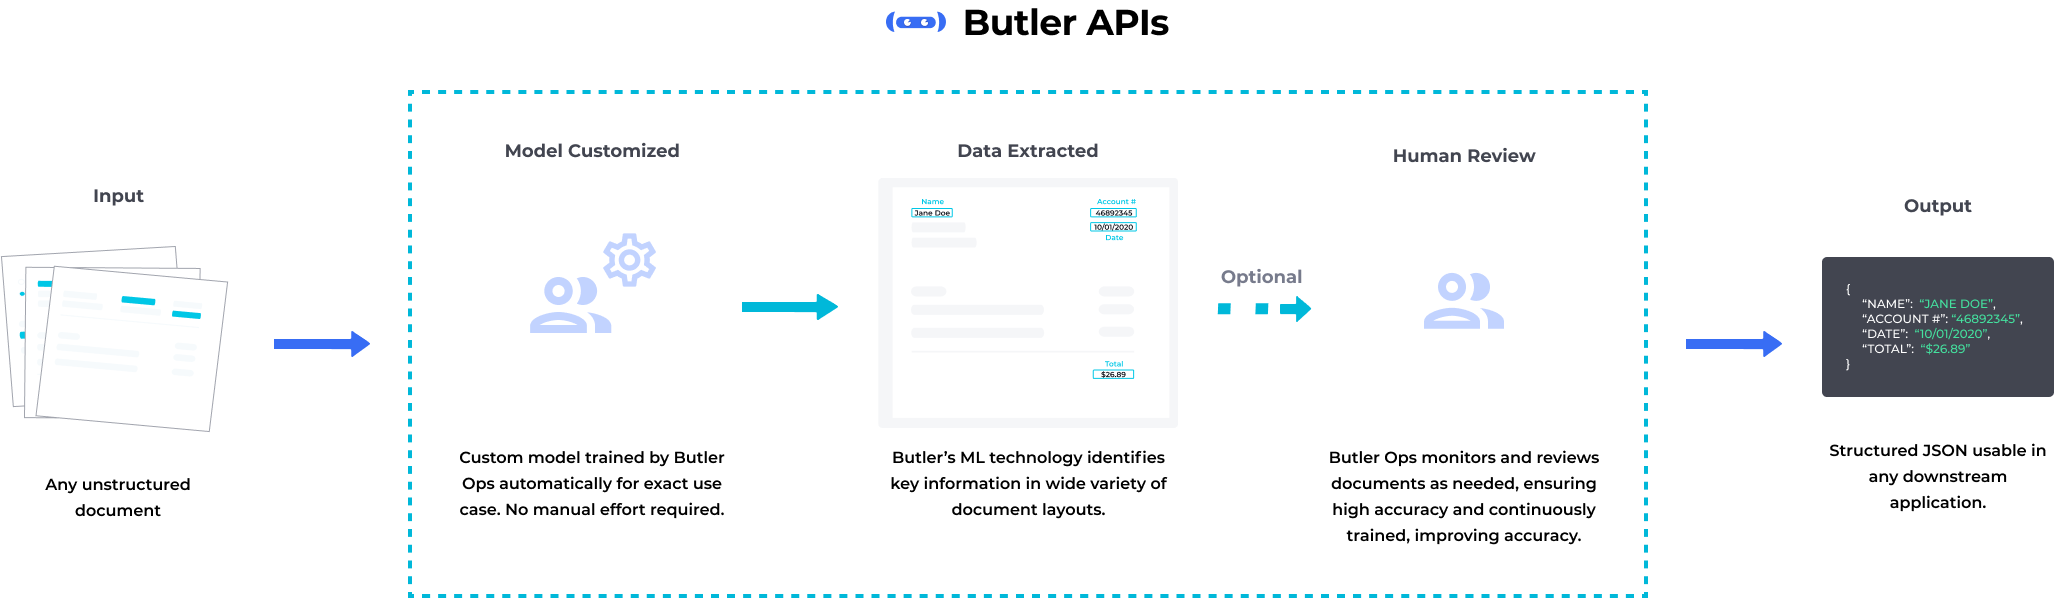 Upload documents to Butler's APIs and receive structured JSON results that are 99.5% accurate.